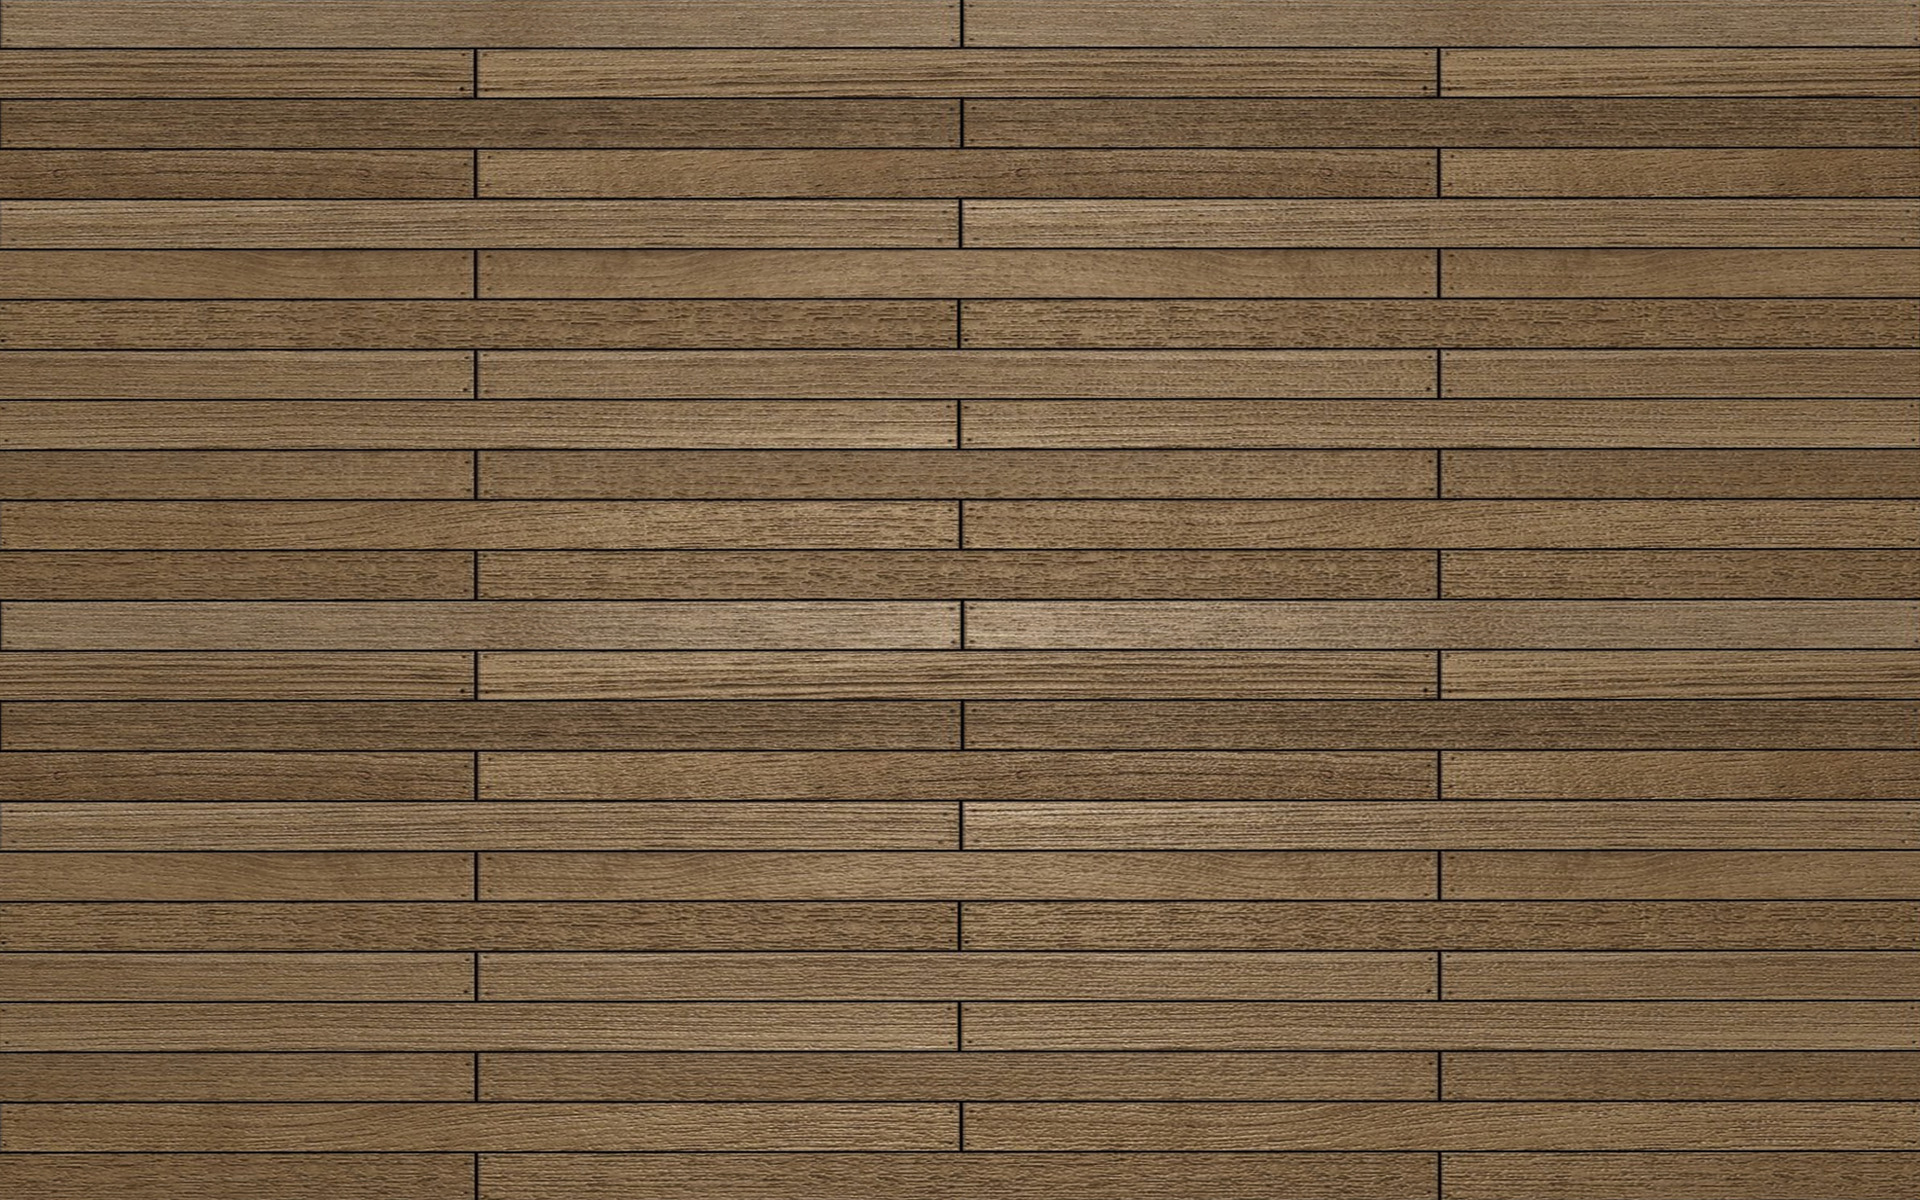 Wood floor background wallpapers   Others 1920x1200